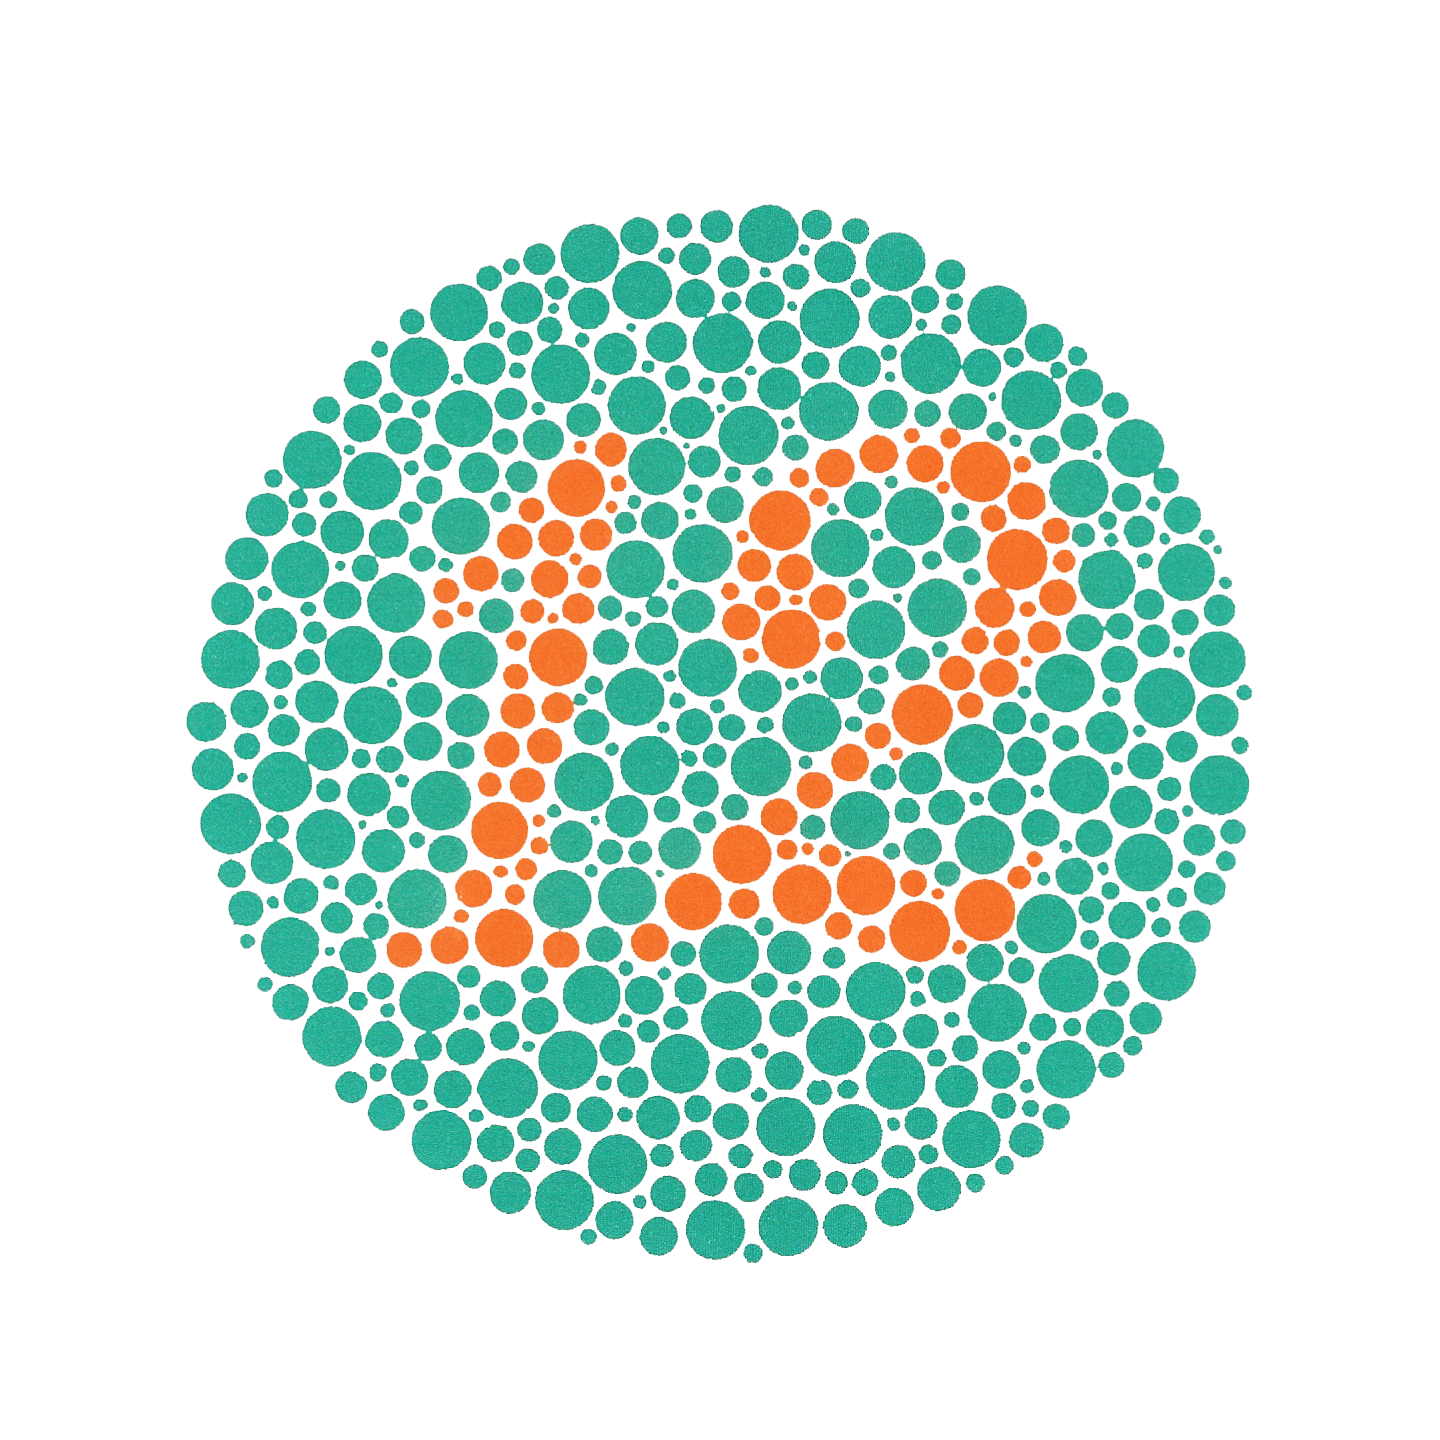 ishihara colour blind test